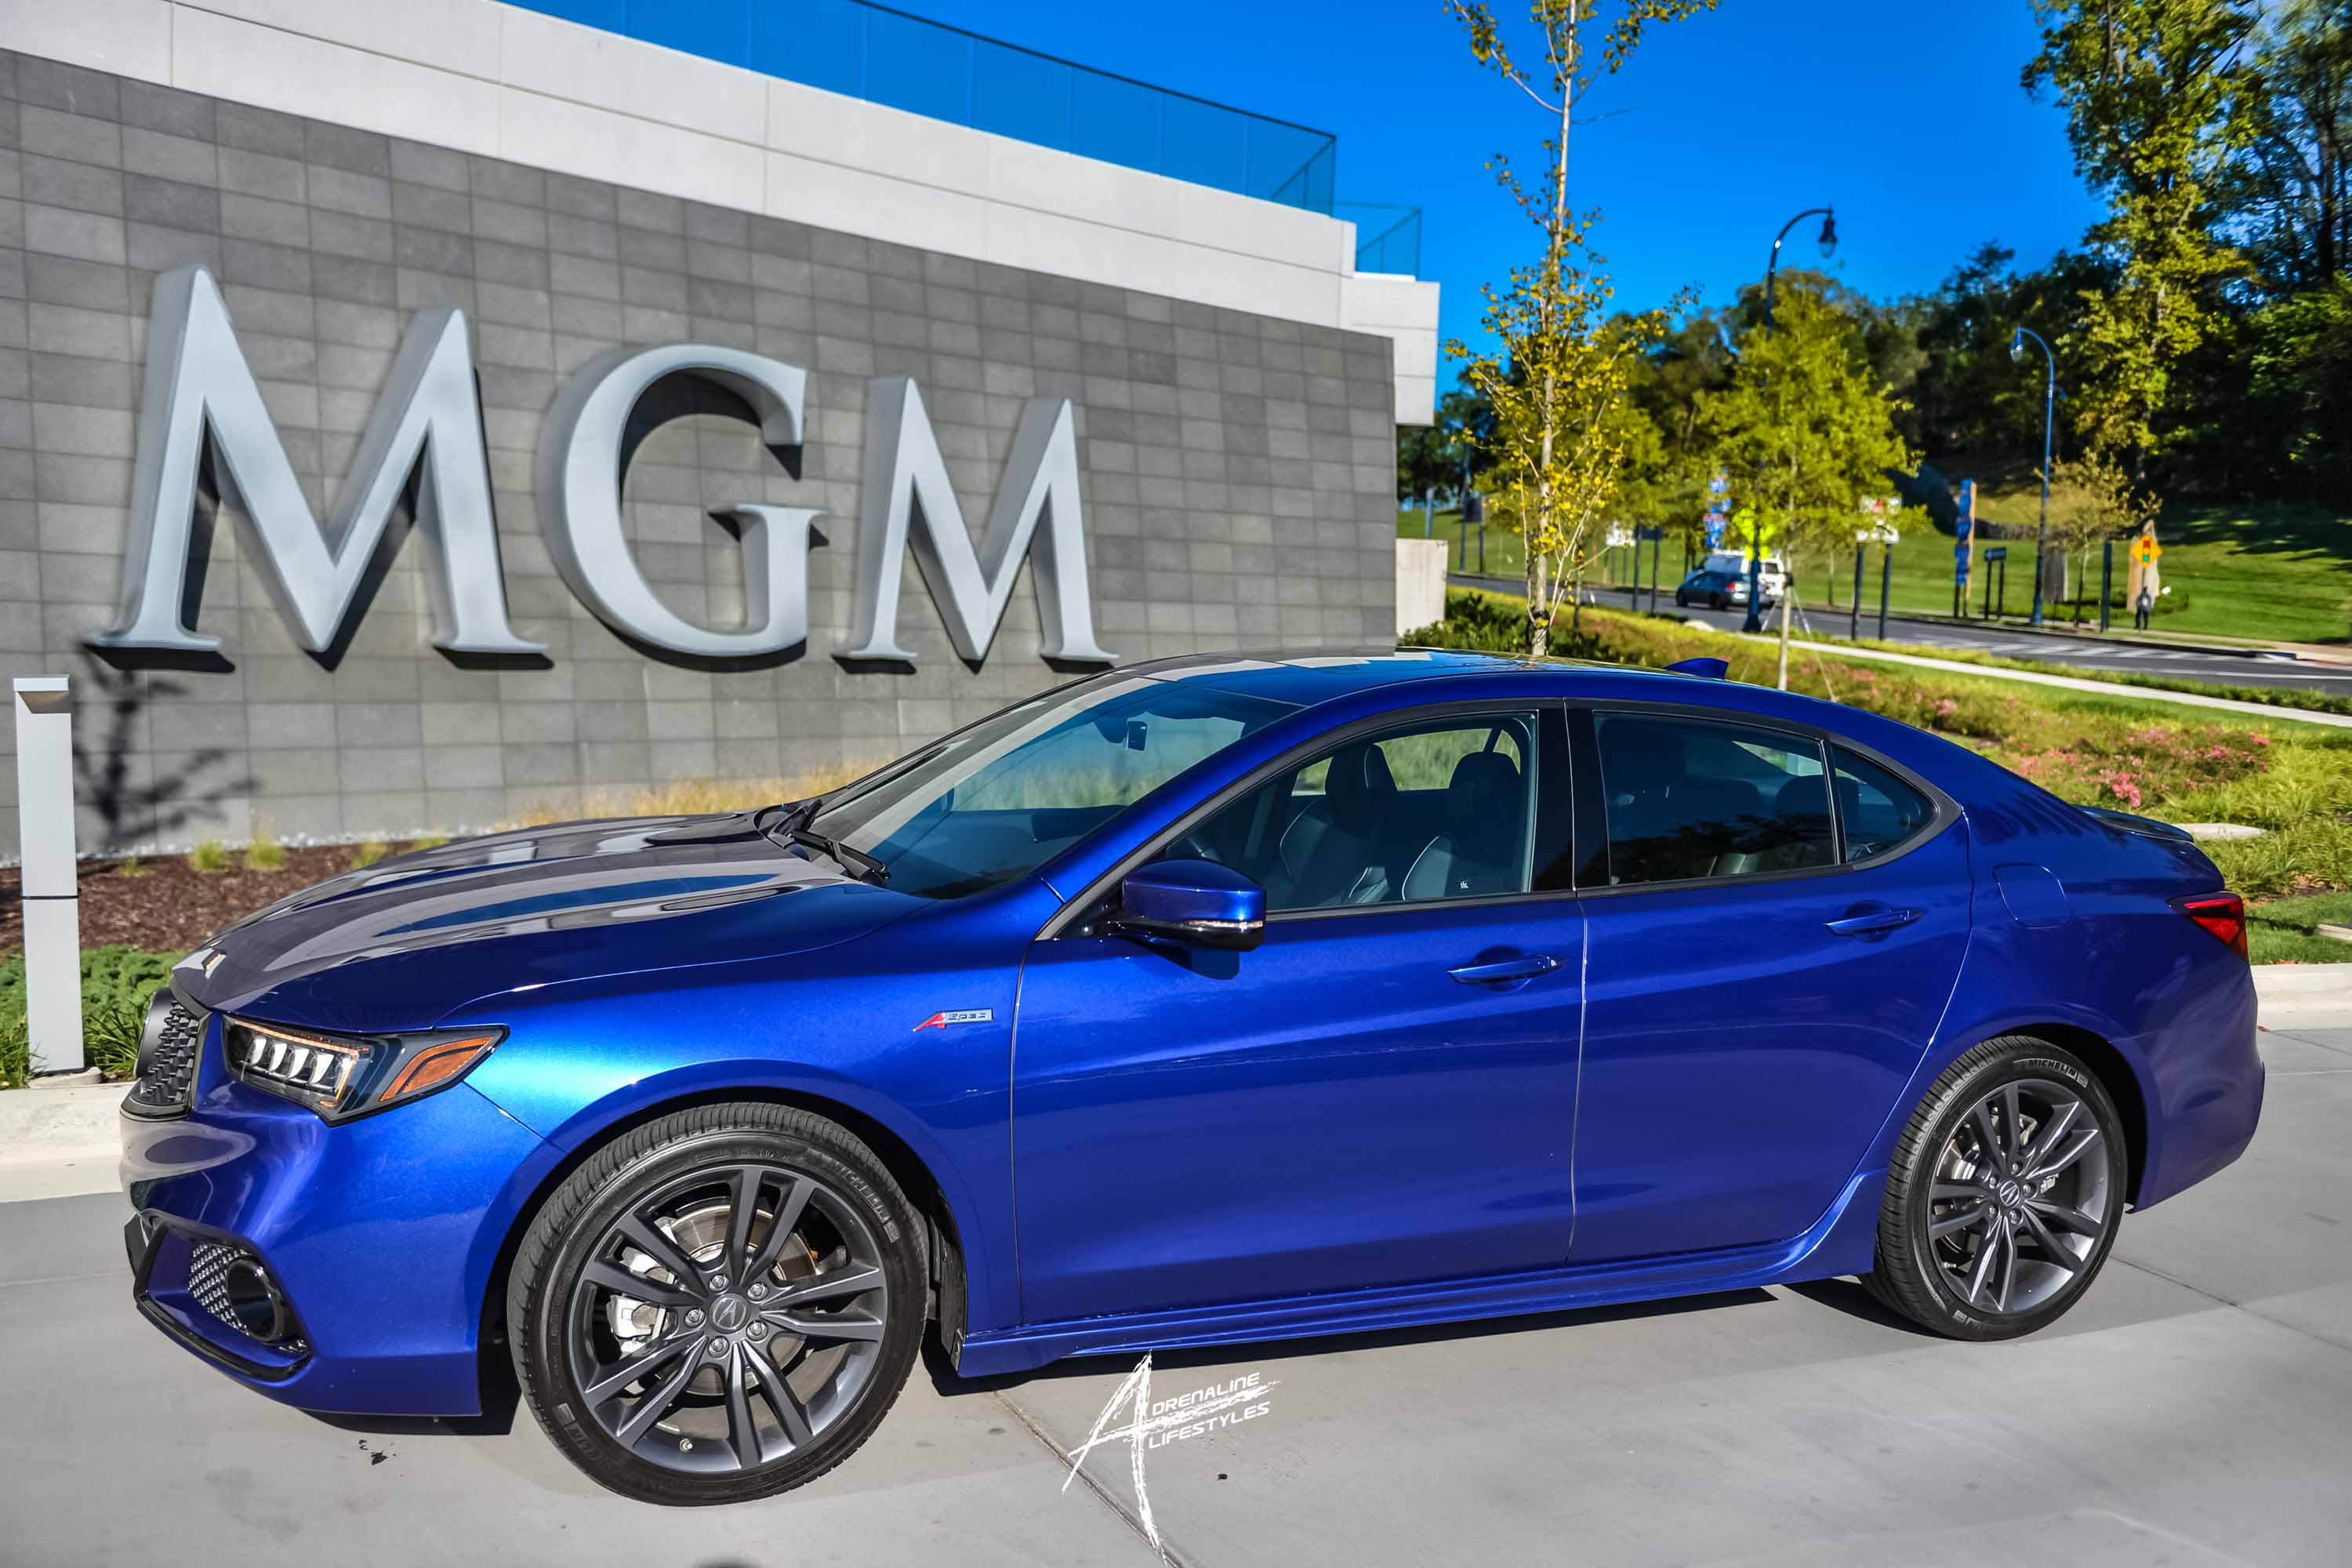 exterior htm lease oem image finance xl main pa offers acura incentives wexford tlx new deals